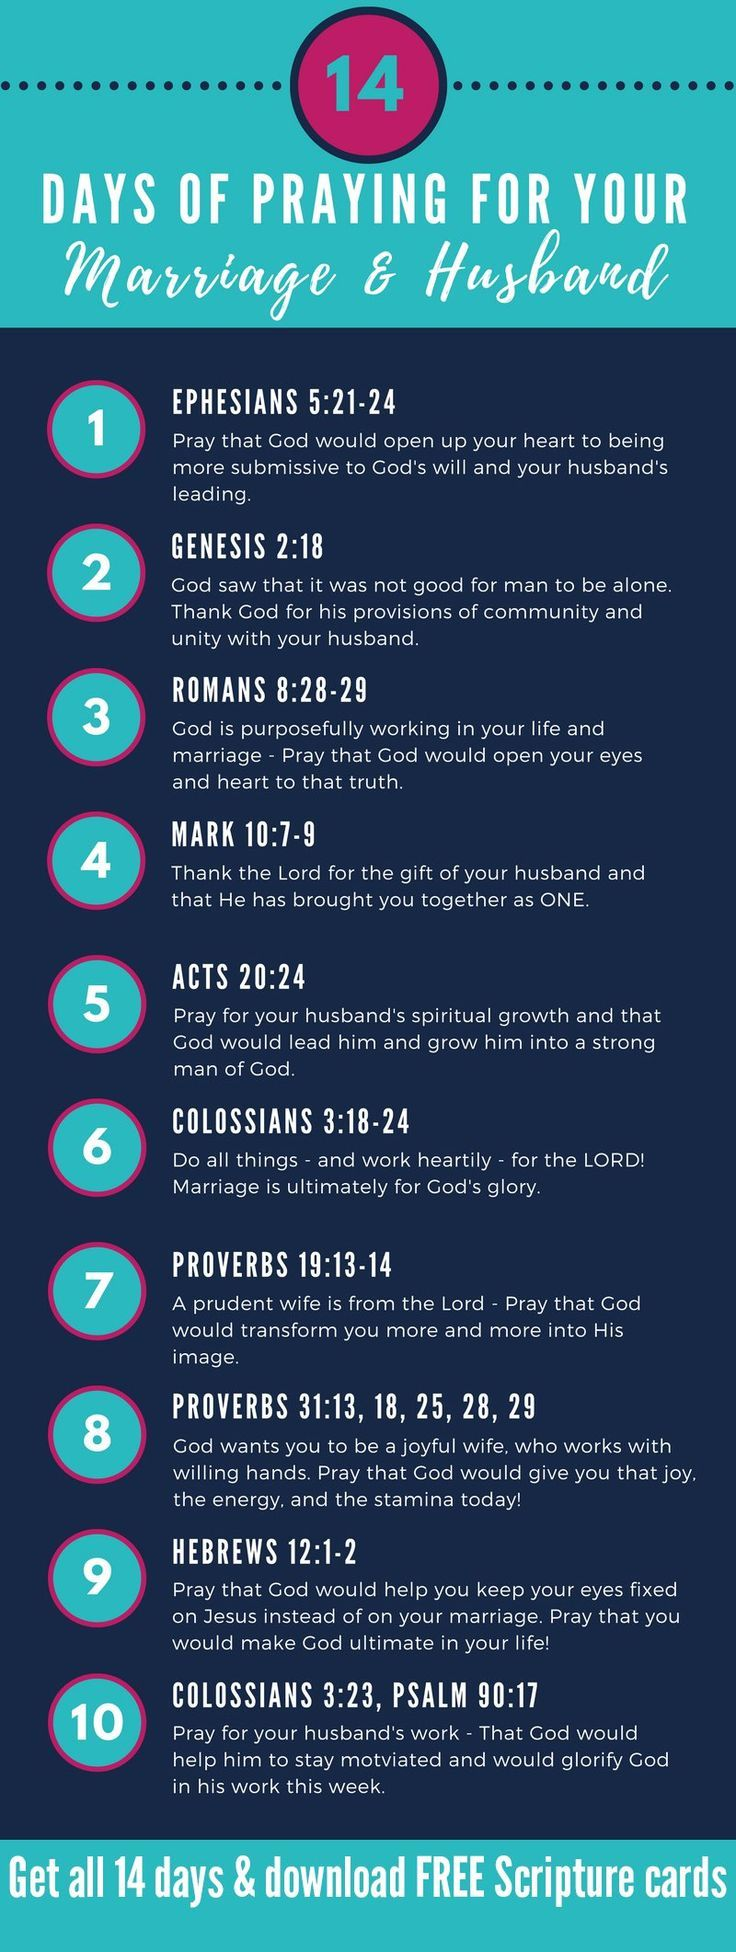 Free printable prayer cards with Bible verses to pray over your marriage and husband.